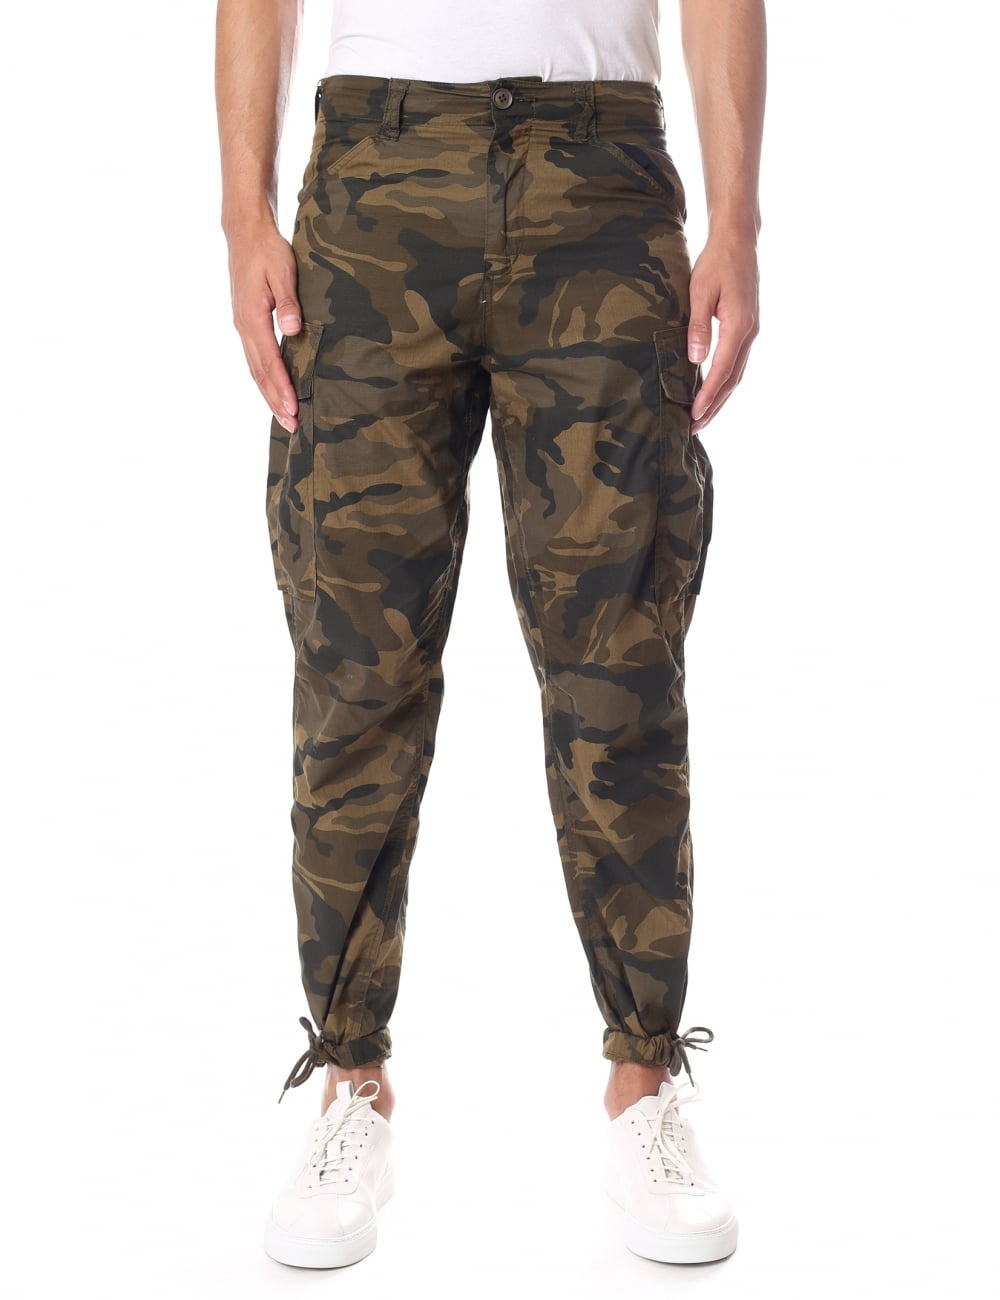 official site new product hot-selling genuine Junk De Luxe Marsh Men's Camo Military Pants